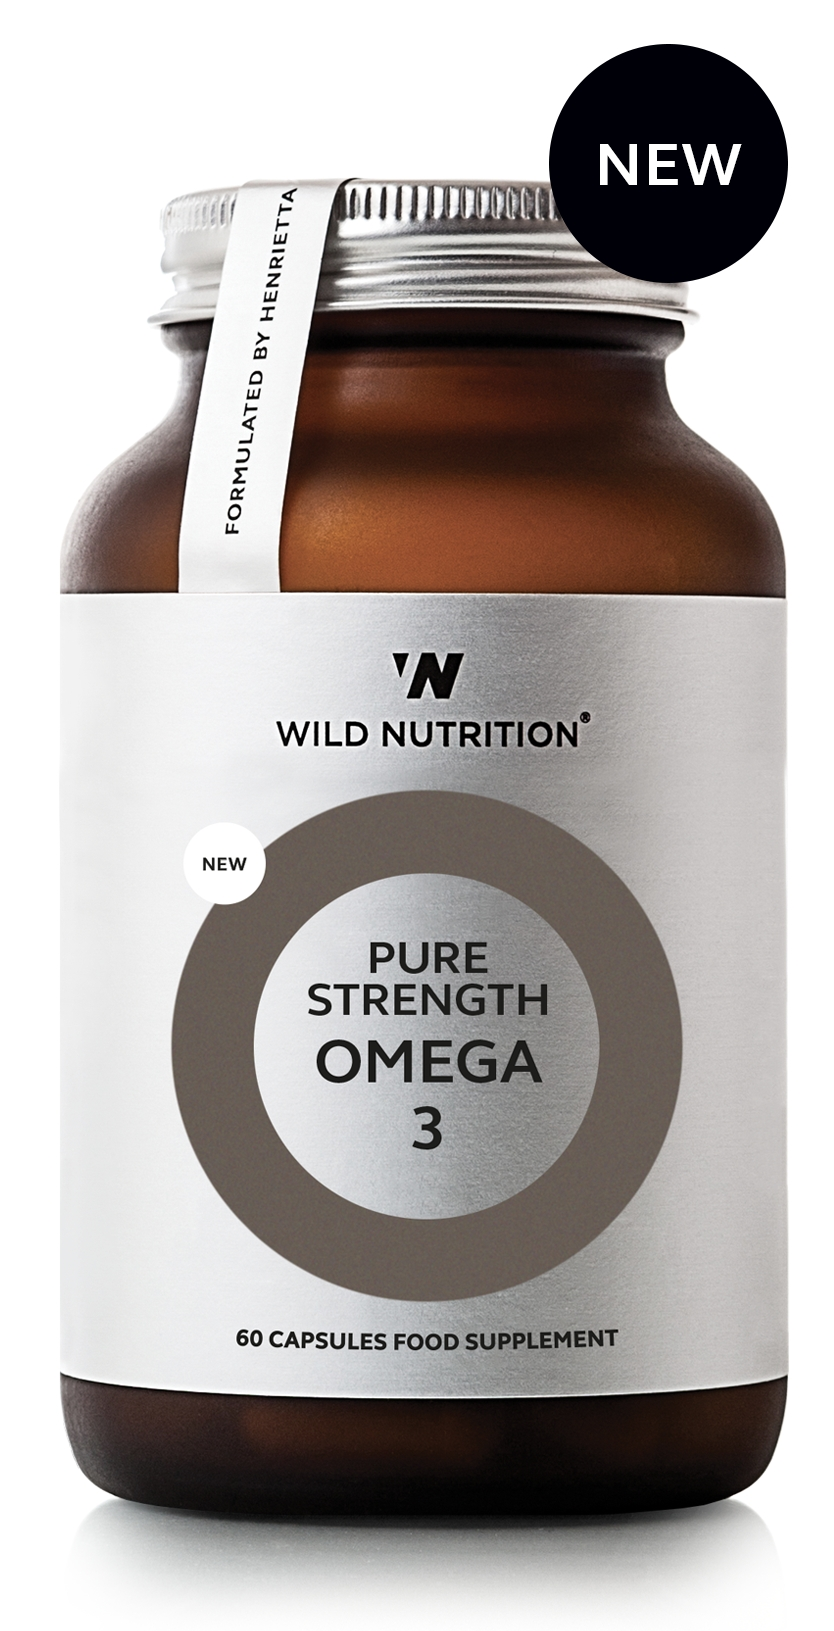 Wild nutrition omega 3 20170919 174158